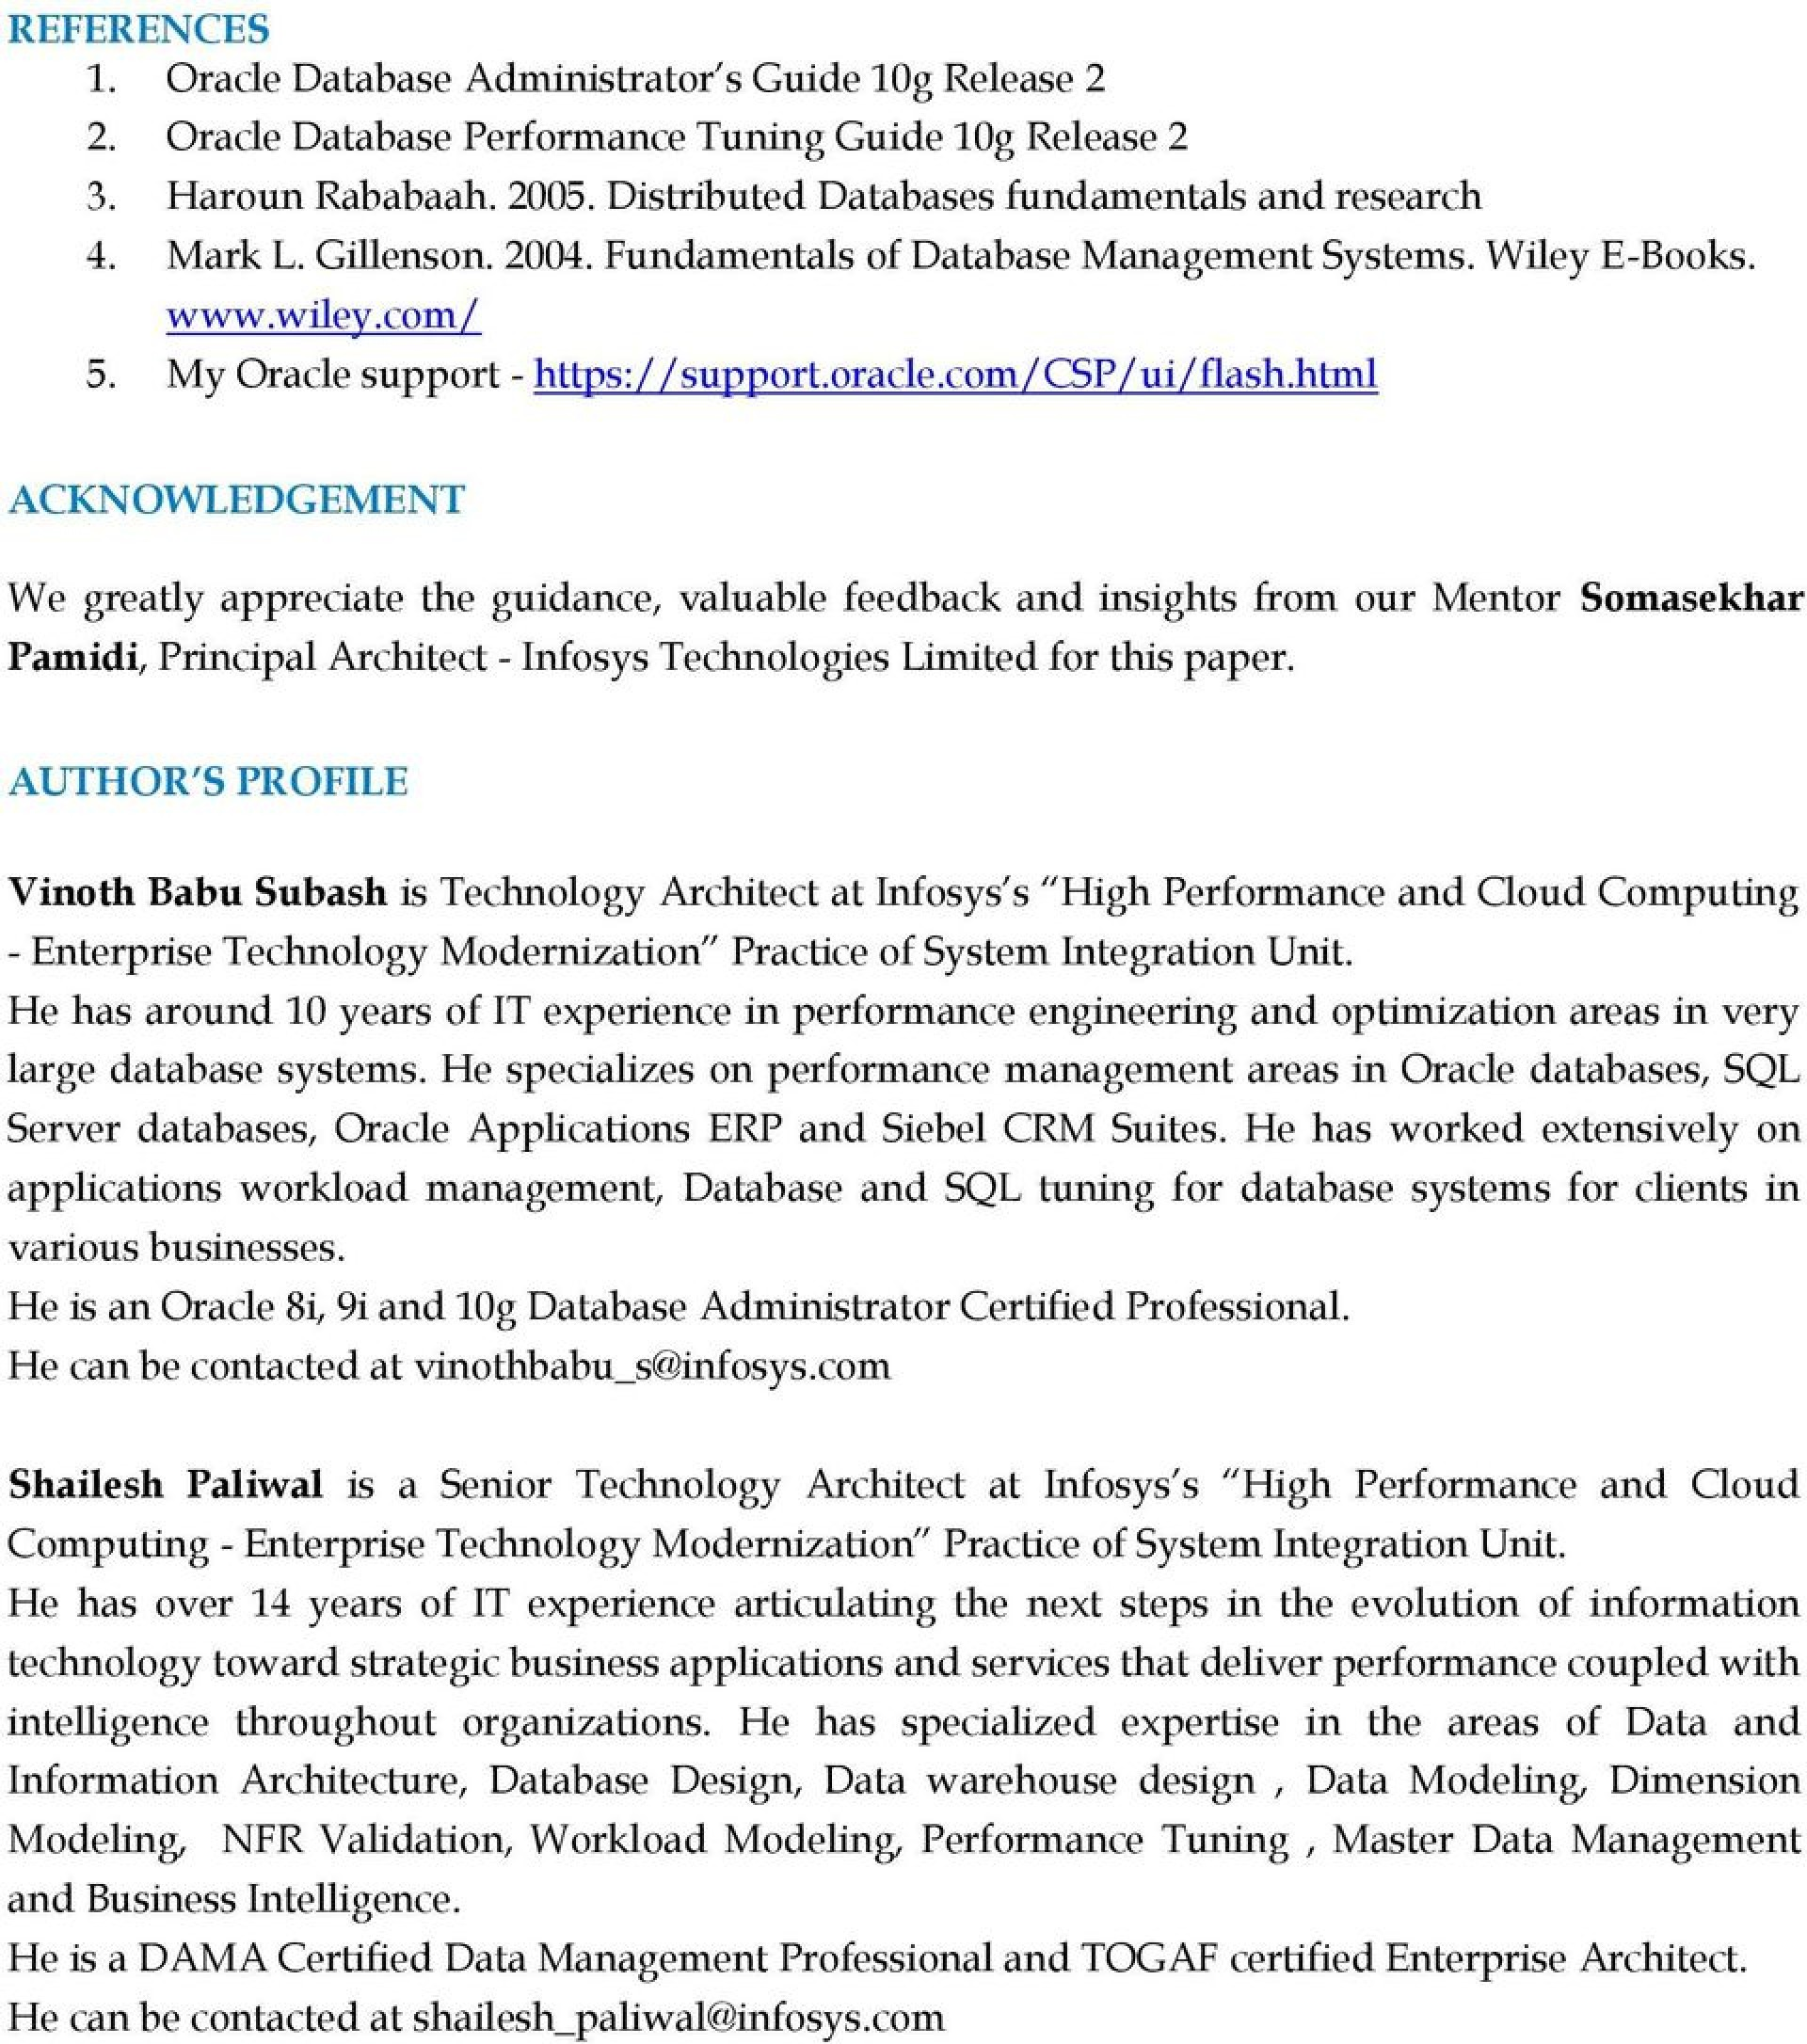 004 Research Paper Database Management Topics Page 14 Amazing On System 1920